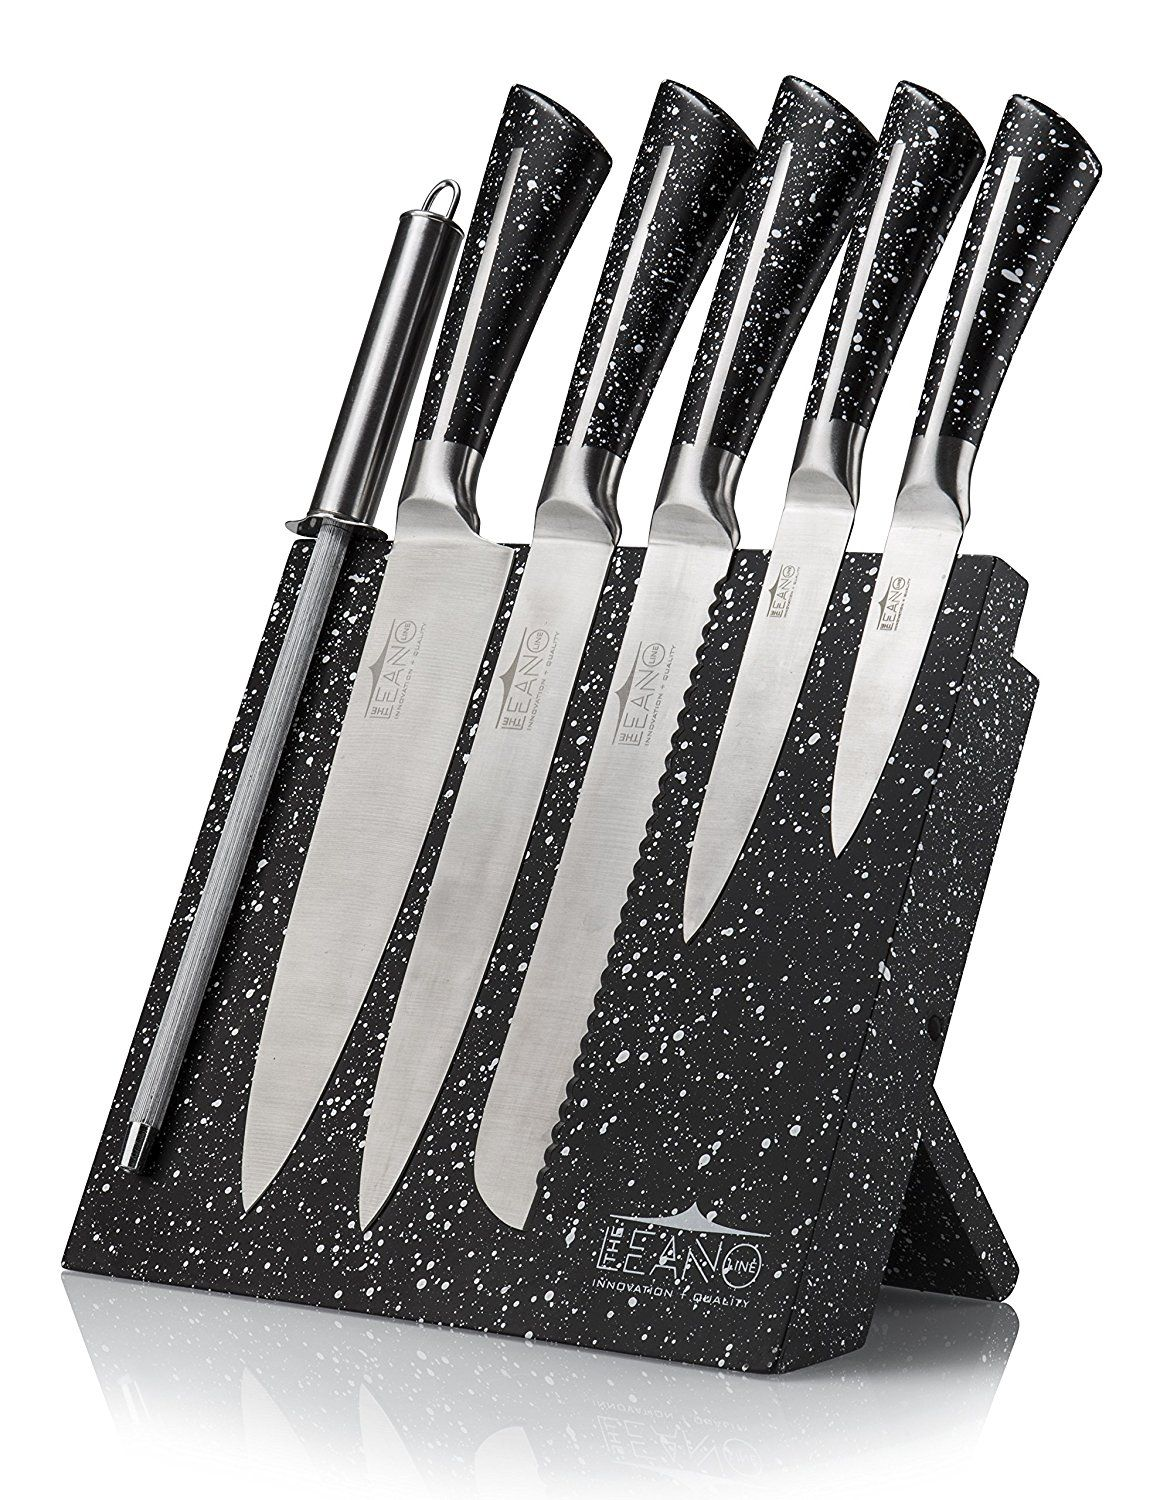 Leano Line Stainless Steel 7 Piece Kitchen Knife Set with